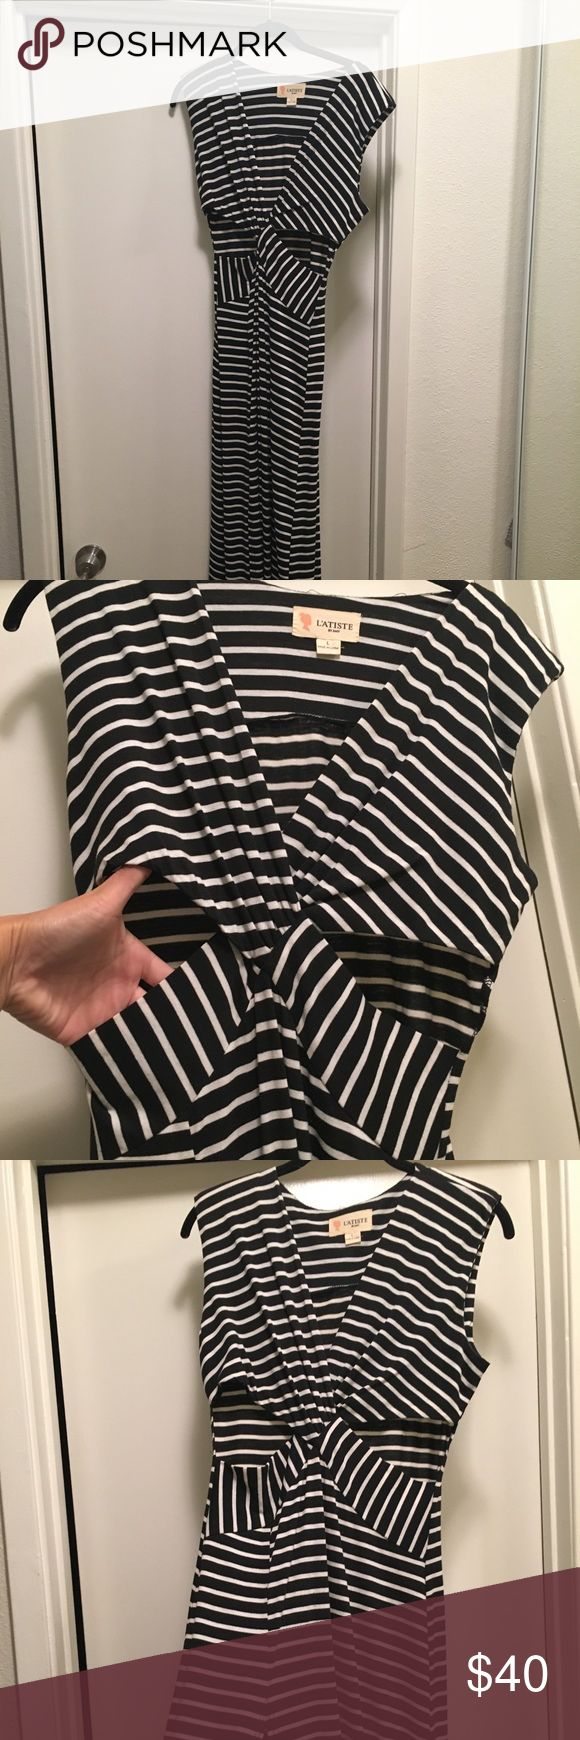 Cut out dress Striped cut out dress with high slit.  Great dress for going out! Only worn once, no flaws at all. Has cut outs one each side as pictured and a high slit up the right leg L'atiste Dresses Maxi